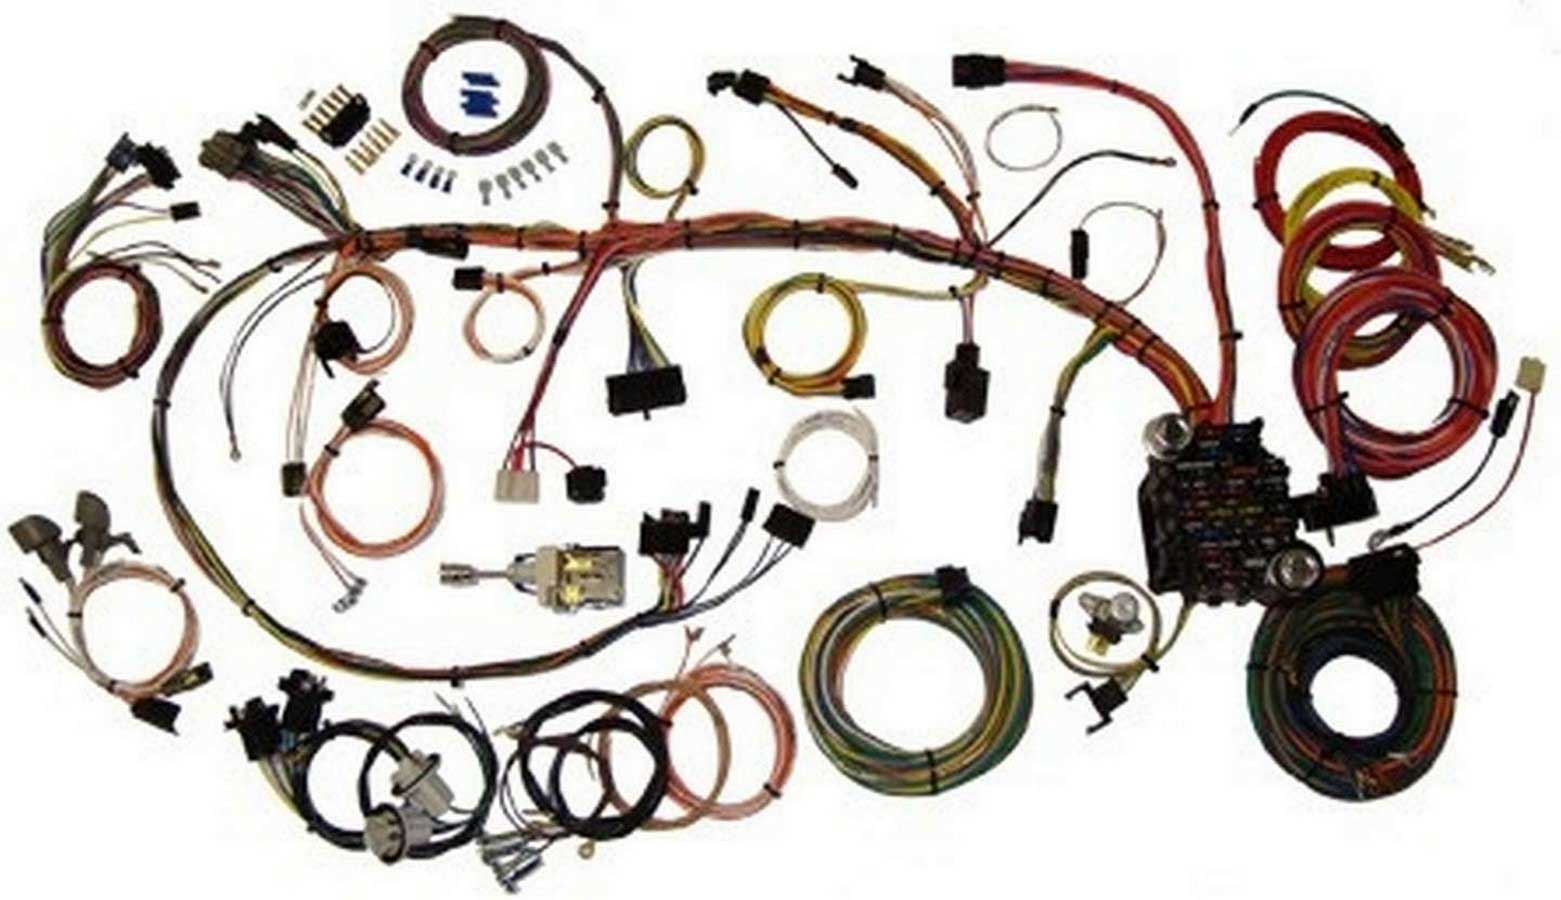 1973 Camaro Dash Wiring Detailed Schematics Diagram 1970 Brake American Autowire System 73 Kit P N 510034 1969